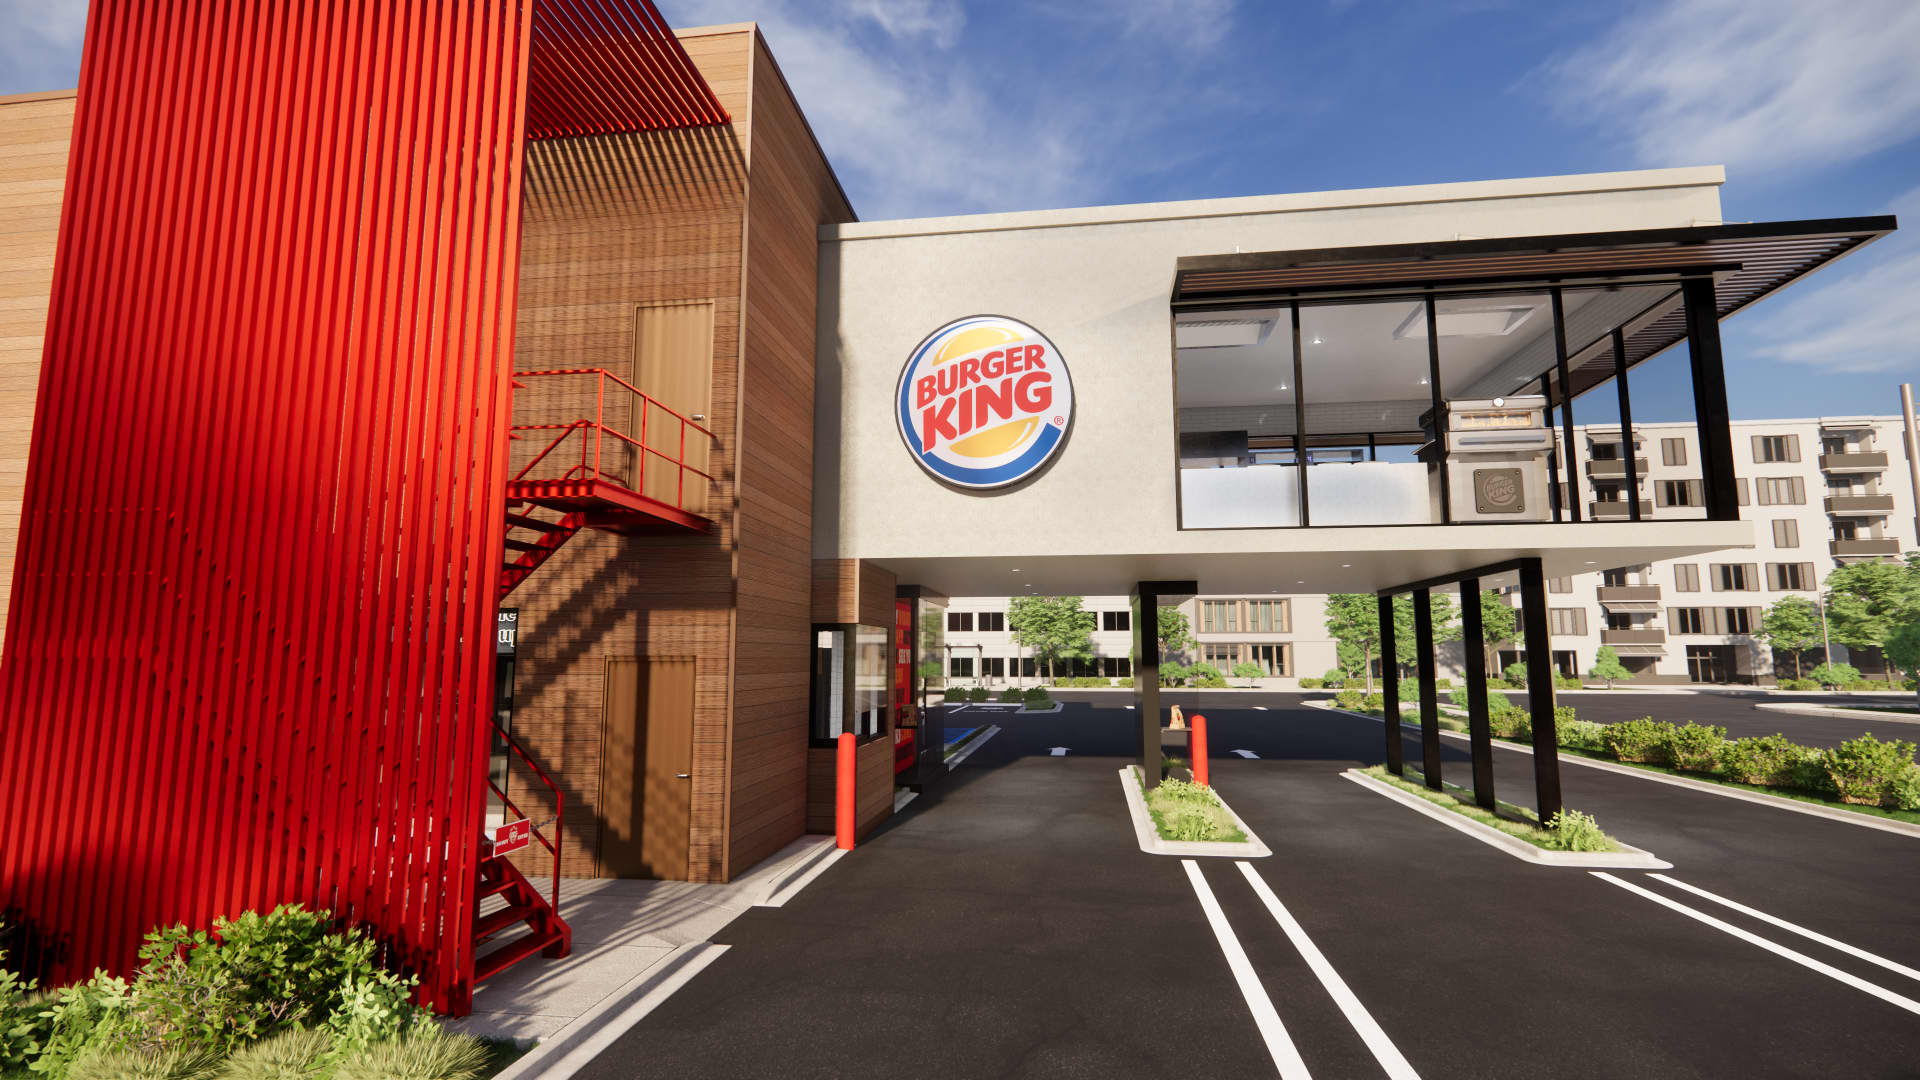 Burger King Next Level's suspended kitchen above the drive-thru lanes